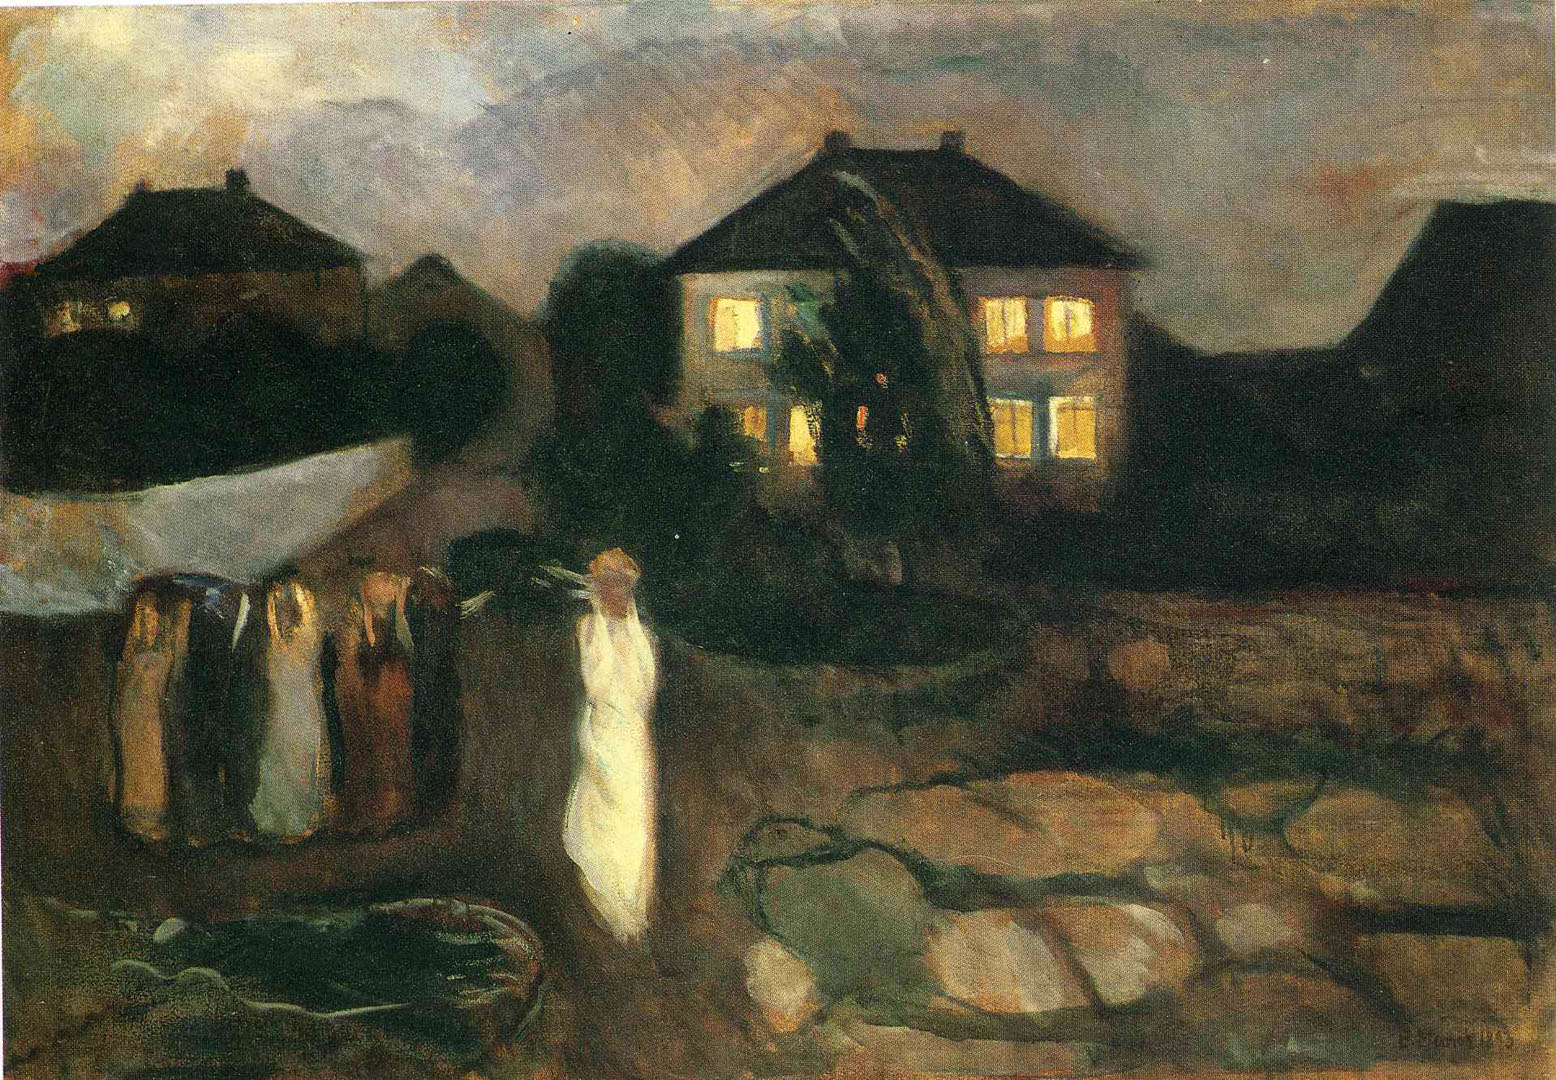 The Storm - Edvard Munch Paintings wallpaper image